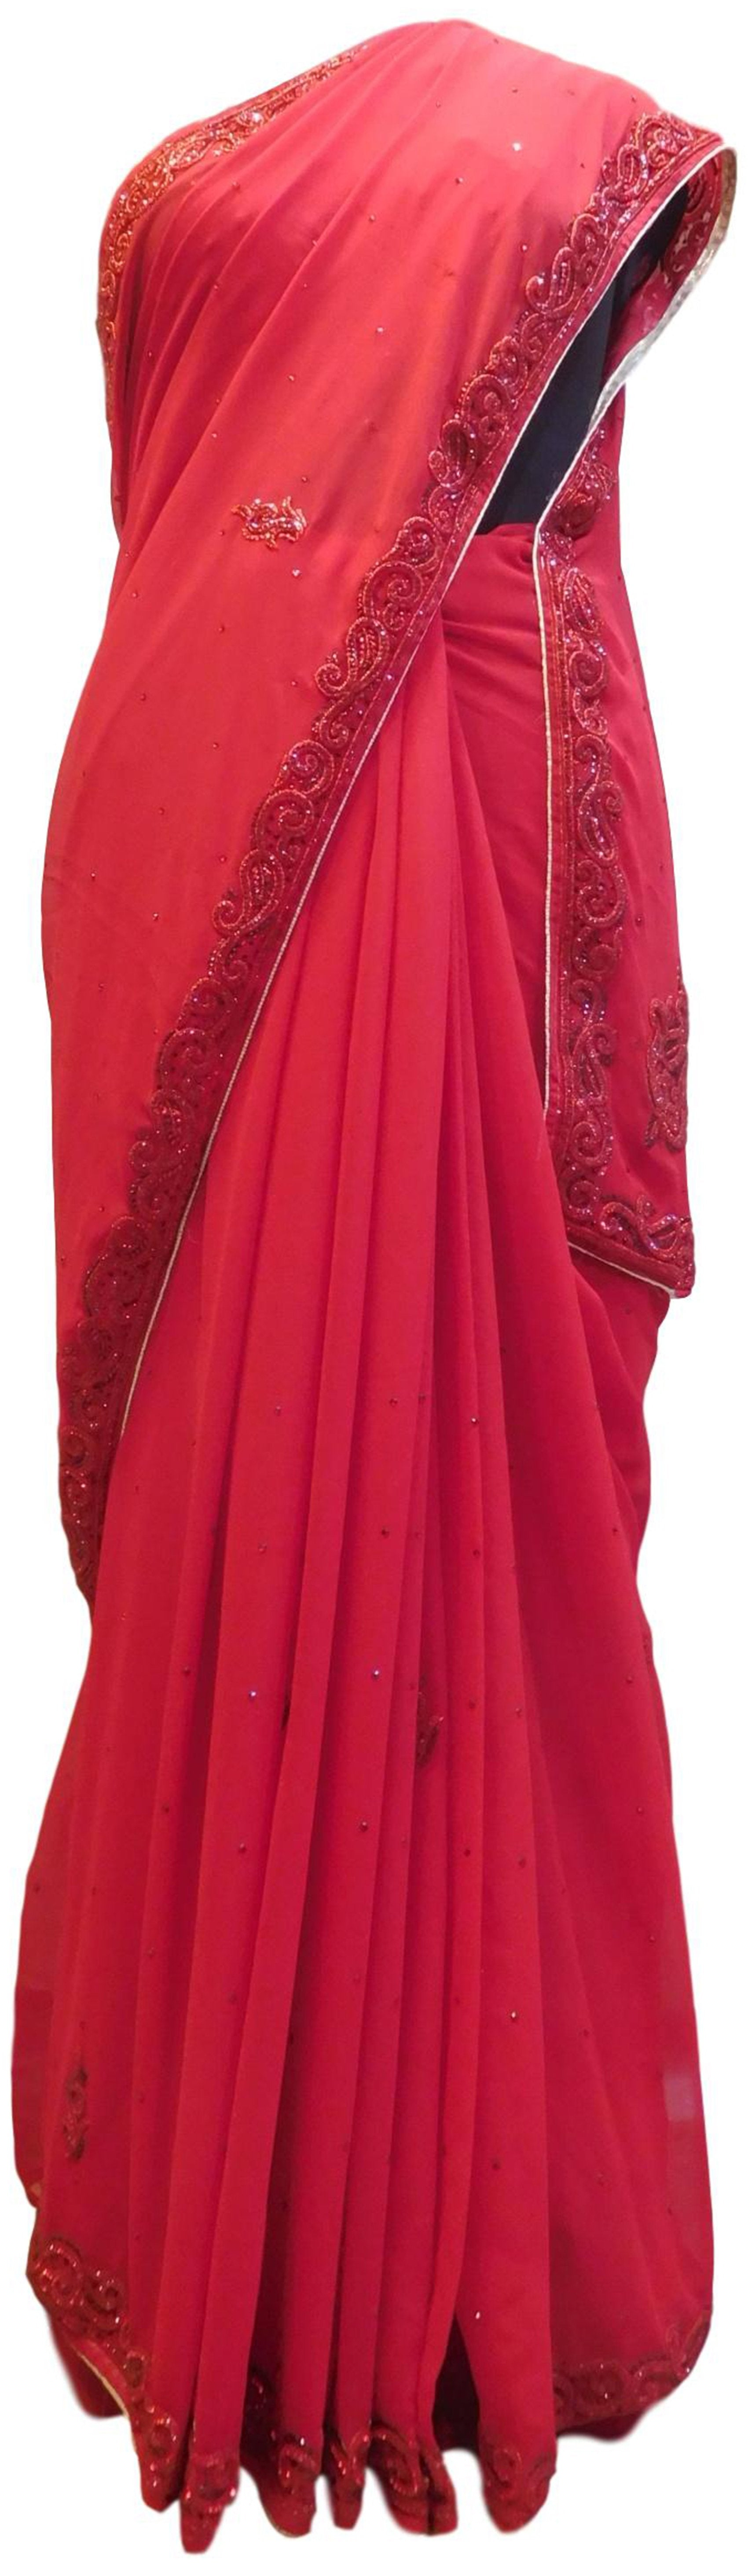 Red Designer PartyWear Georgette Thread Beads Stone Hand Embroidery Work Saree Sari